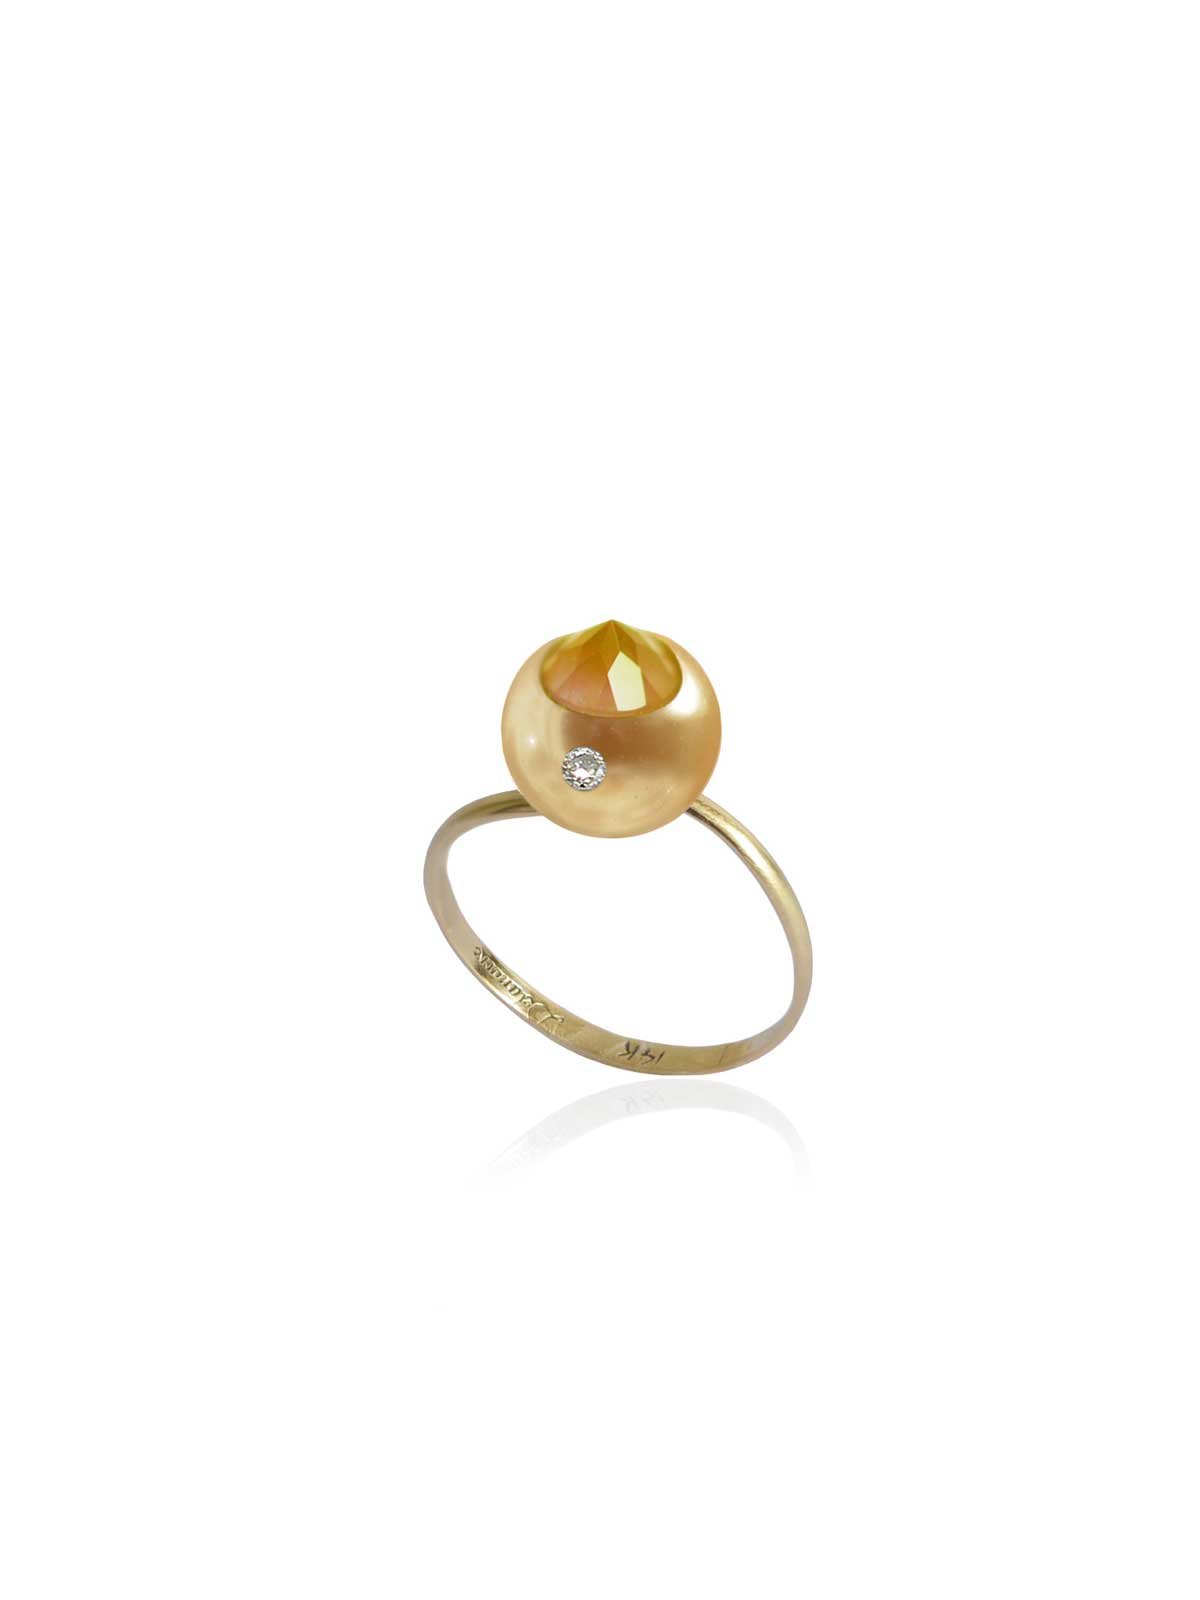 ORGANZA RING Golden South Sea Pearl White Diamond Citrine 14K yellow gold